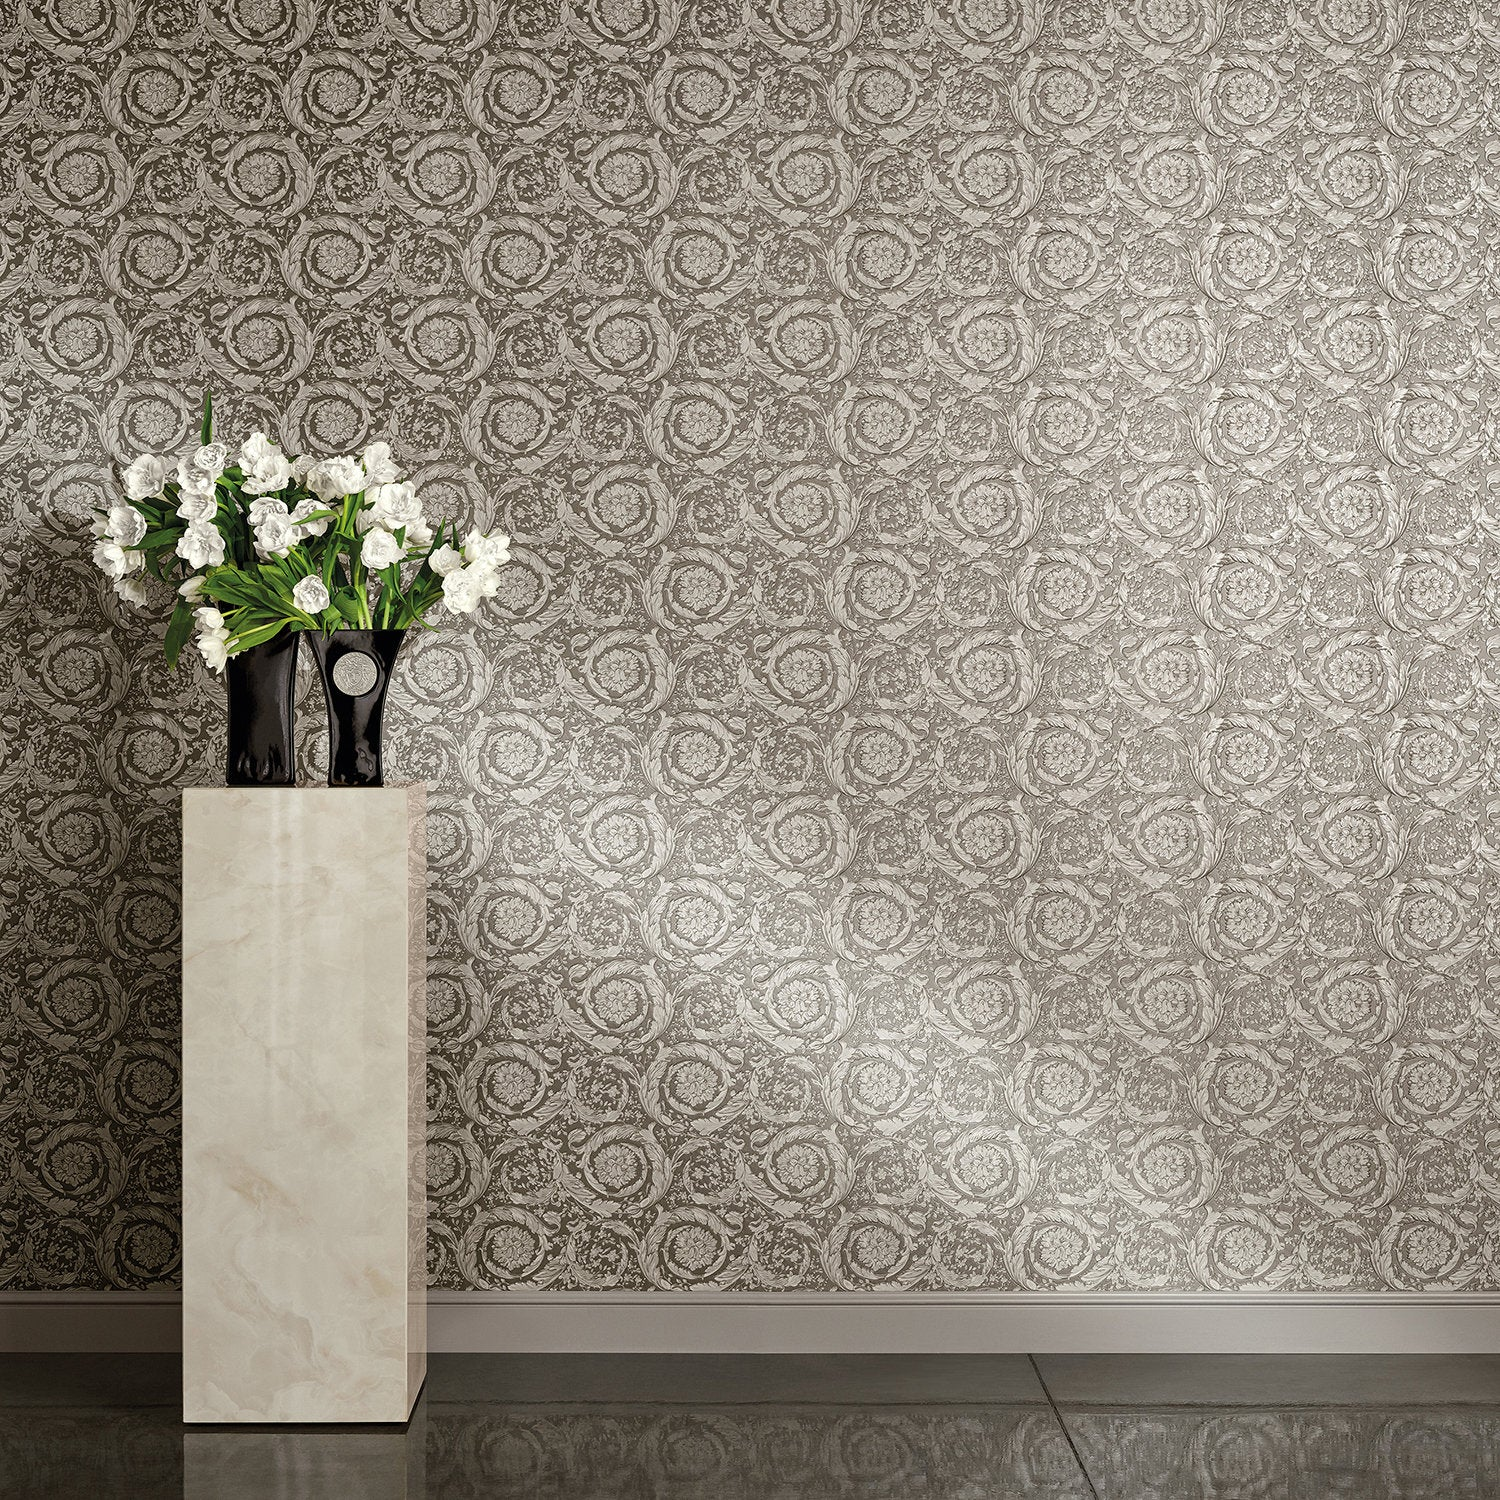 VERSACE - Floral Scroll